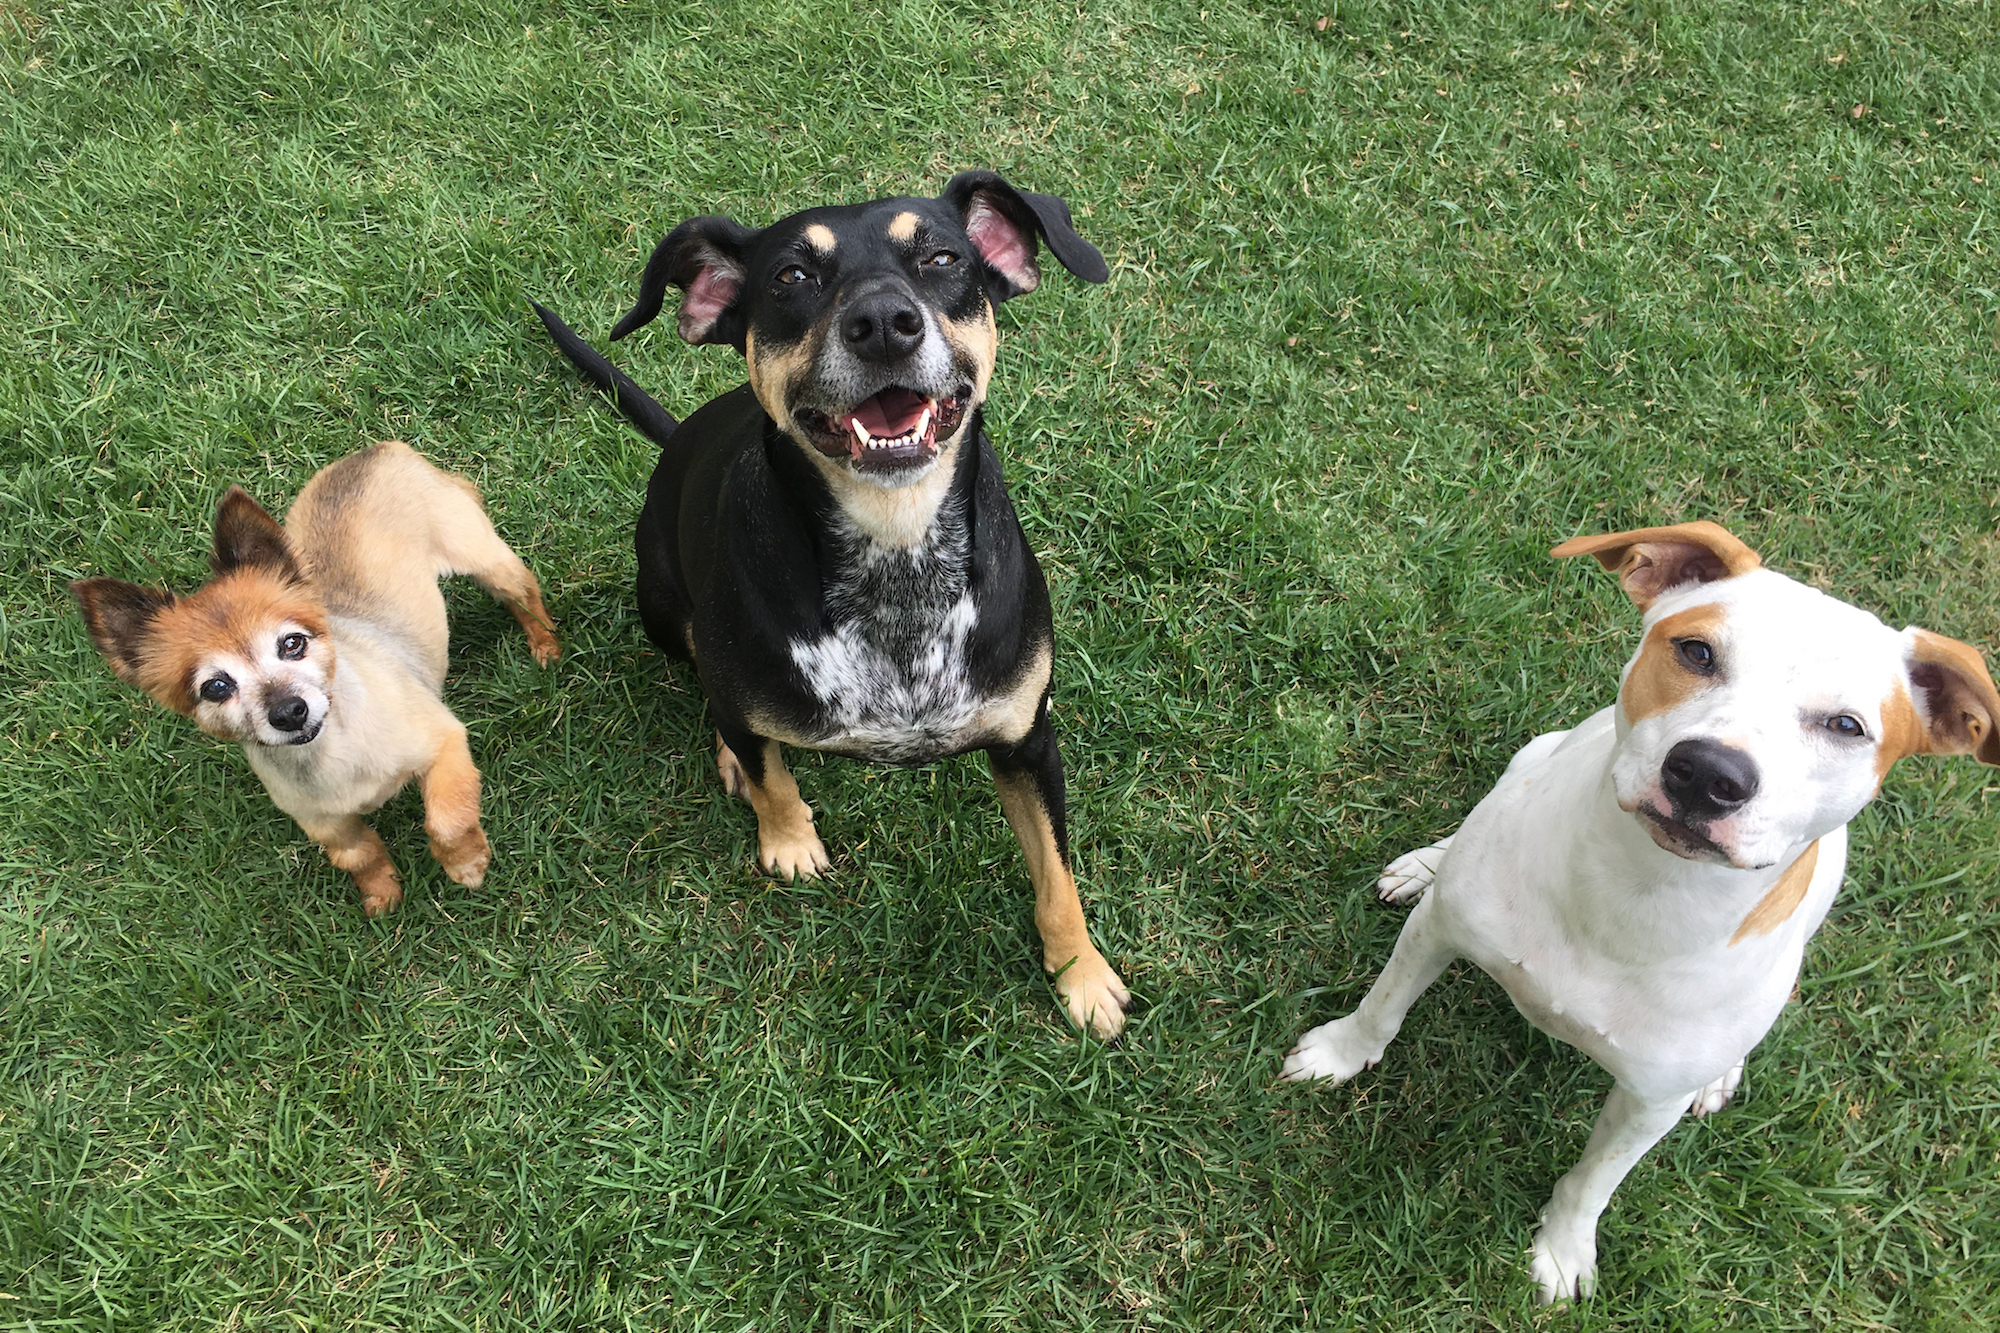 Three dogs in yard